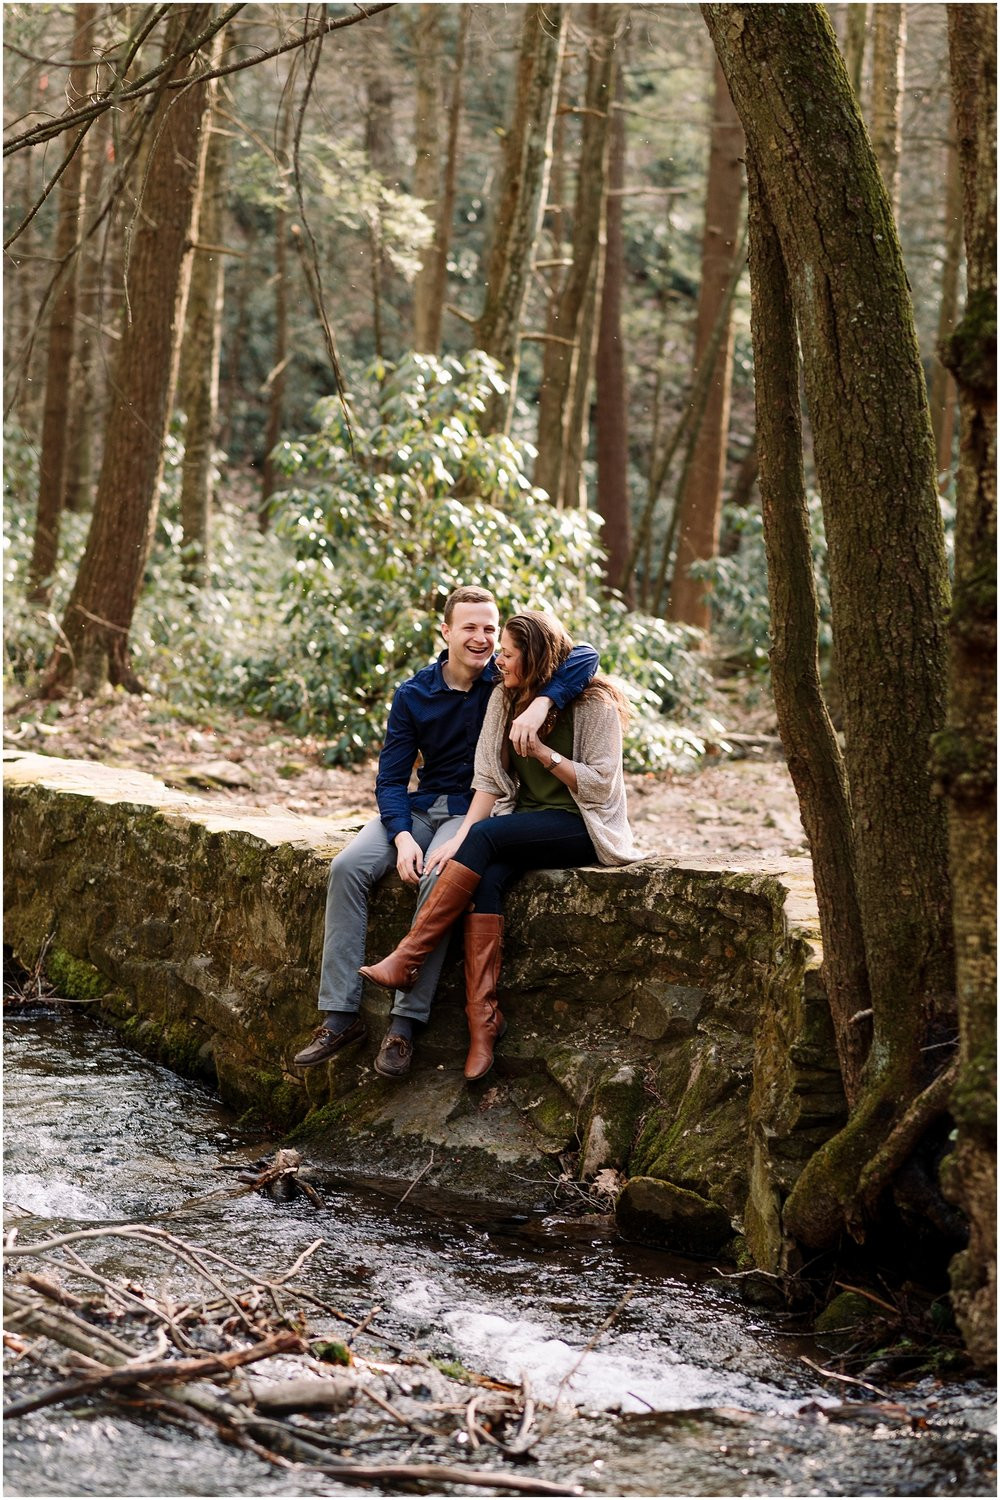 Hannah Leigh Photography Shingletown Gap Engagement Session State College PA_3869.jpg